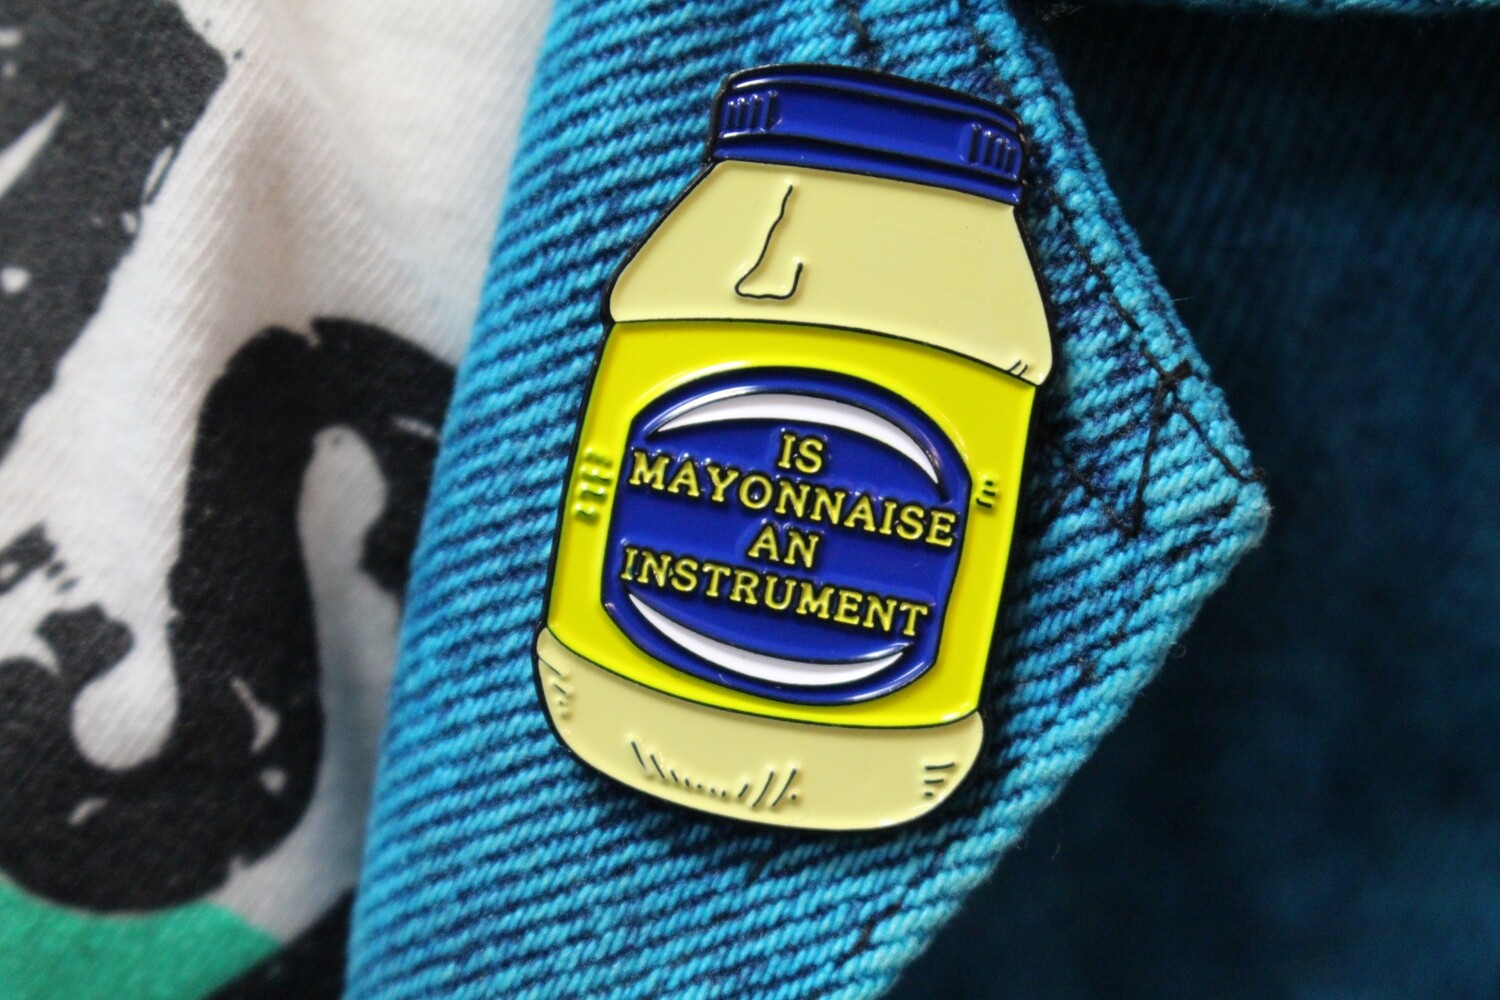 Is Mayonnaise an Instrument? Pin